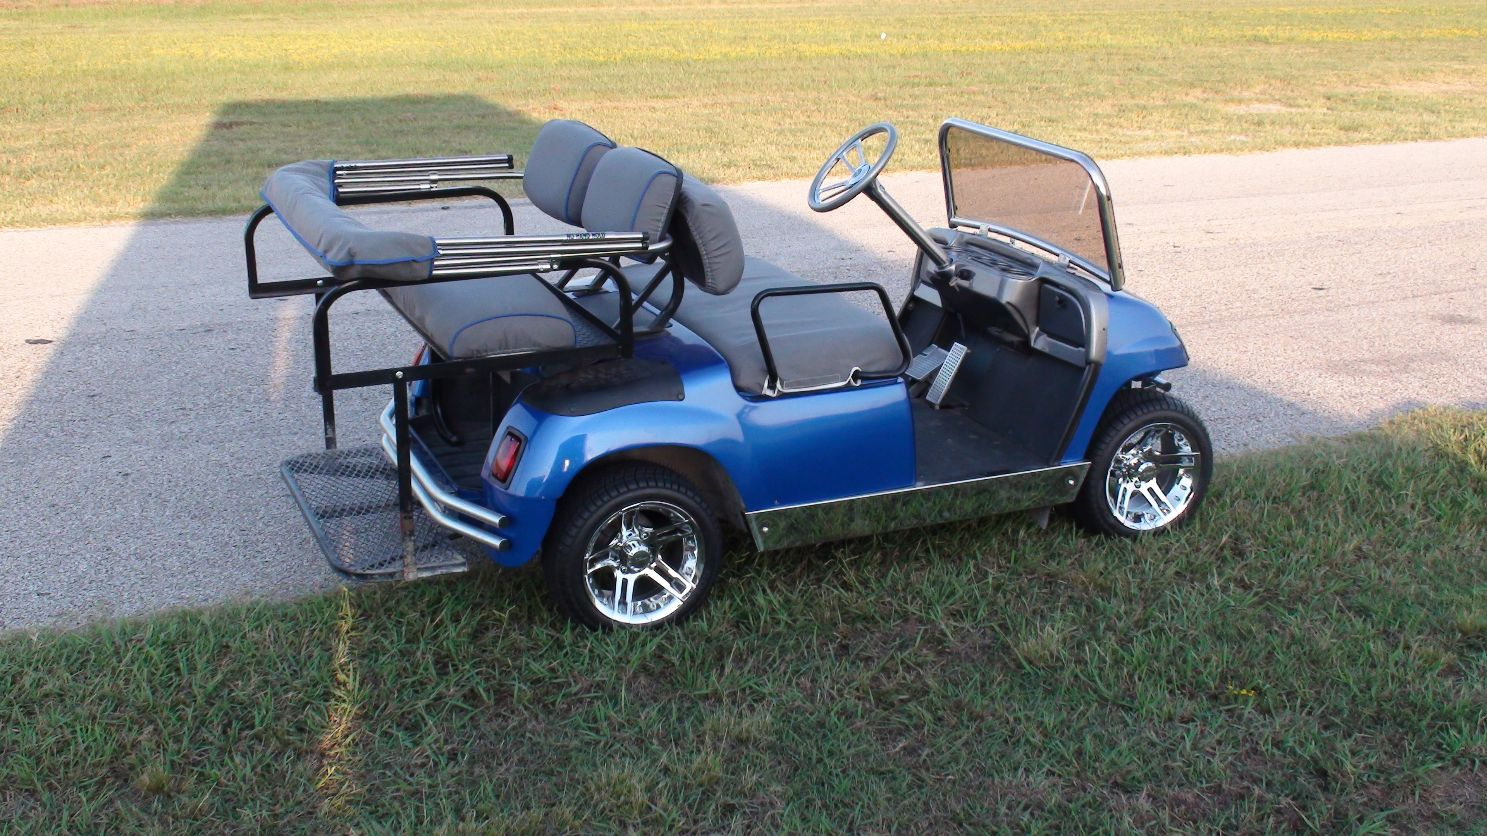 Golf Cart tops roofs canopies|soft convertible|solar Club Car Golf Cart What Is The Height on